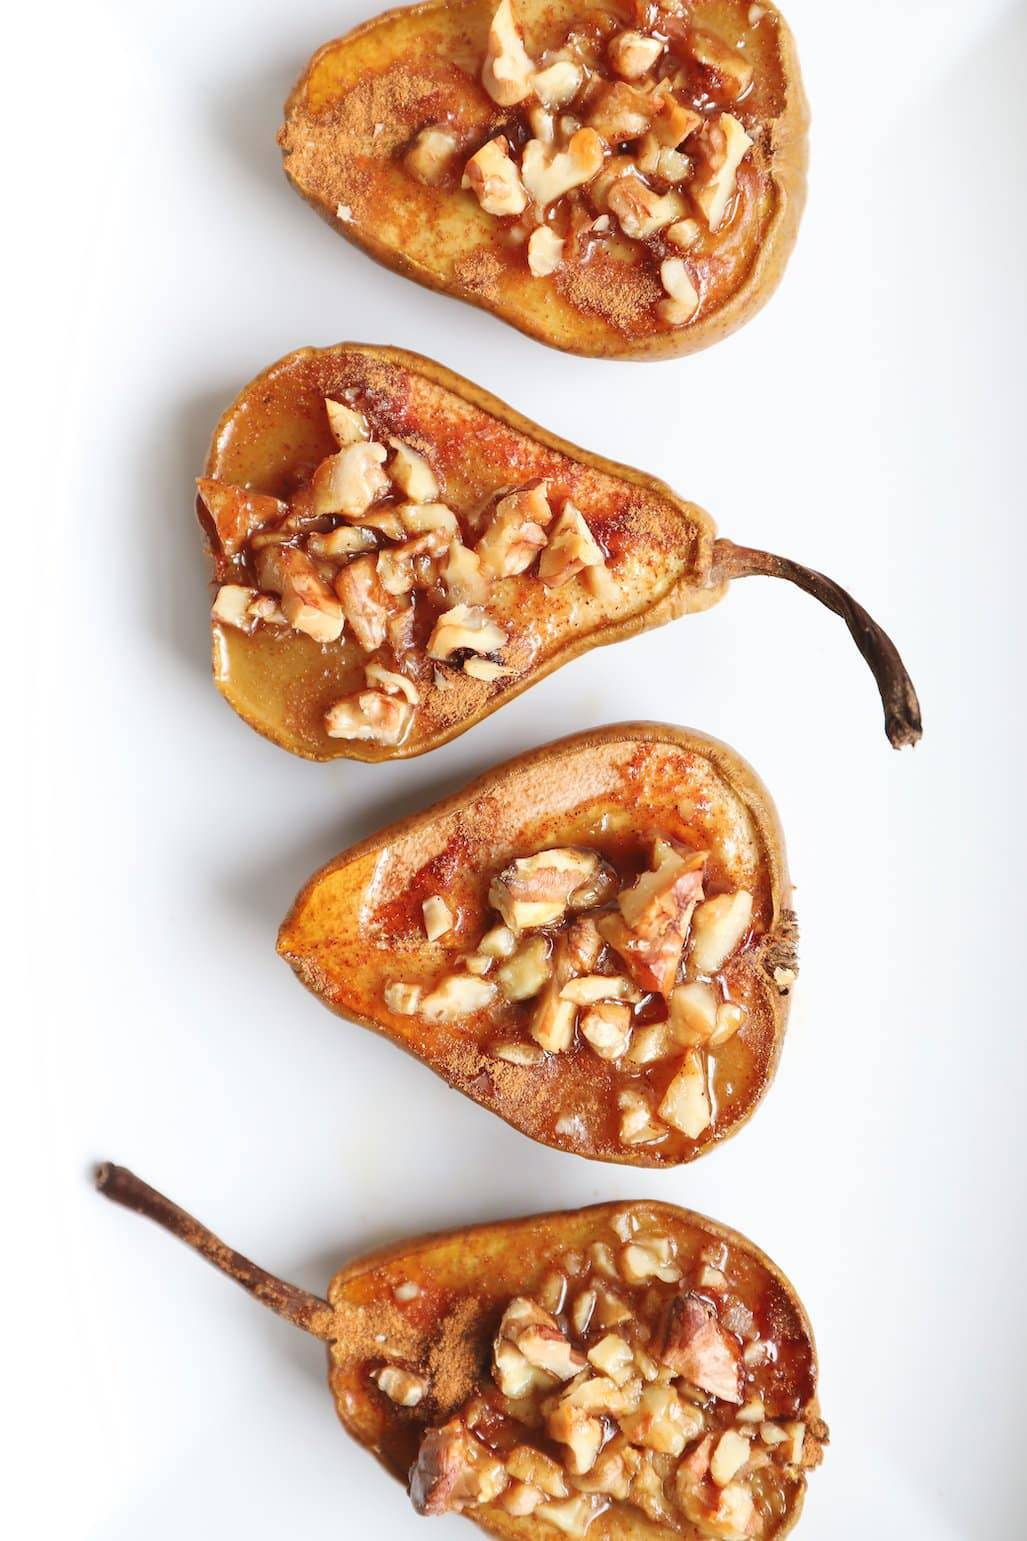 Baked Pears with Walnuts